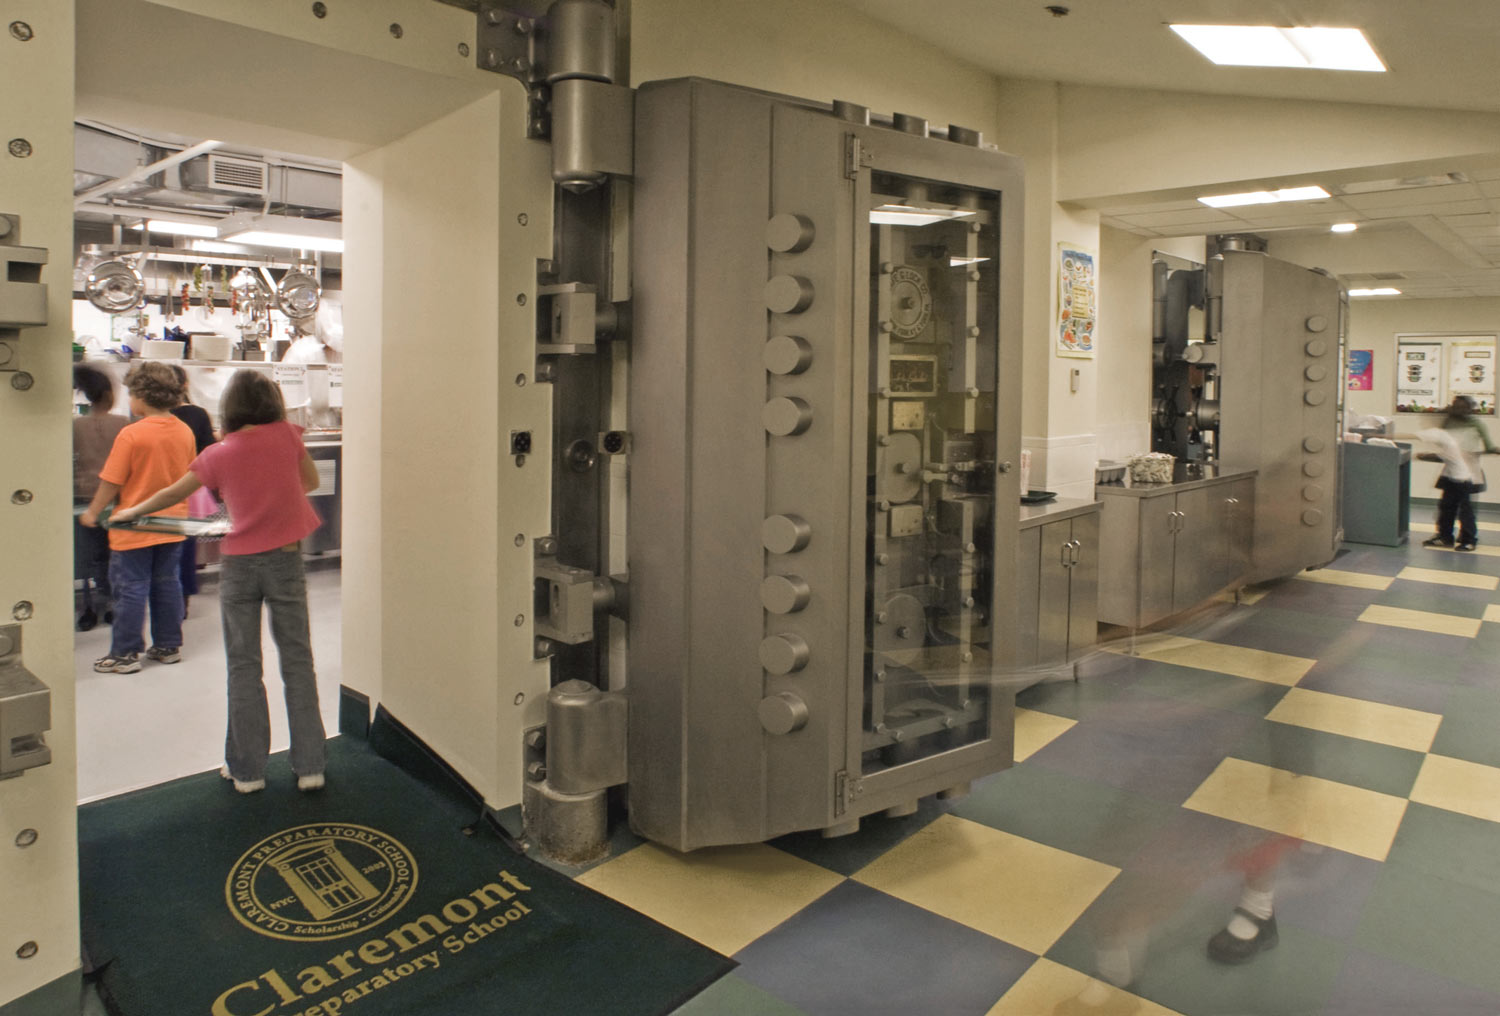 OCV transformed the bank vault to serve as the schools' cafeteria.